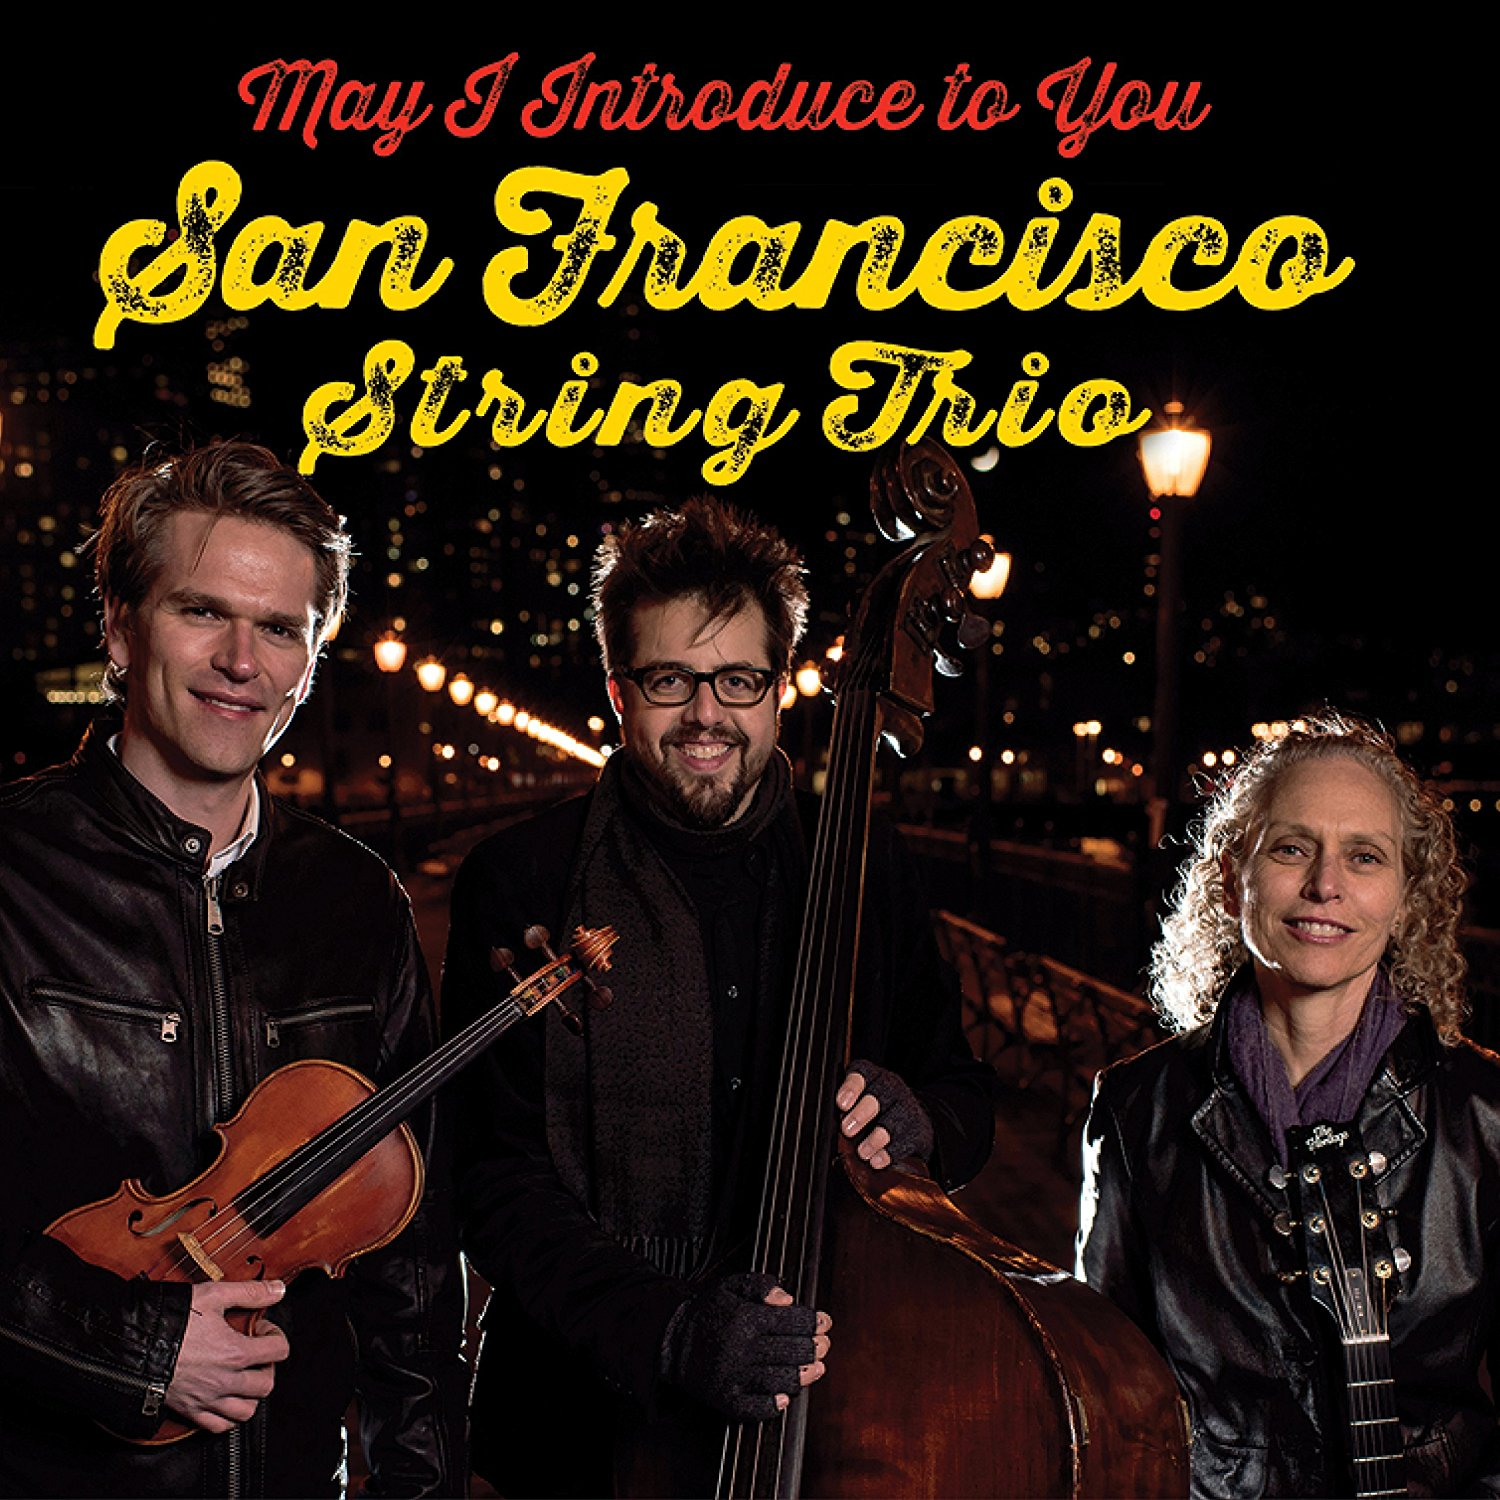 SAN FRANCISCO STRING TRIO - May I Introduce To You cover